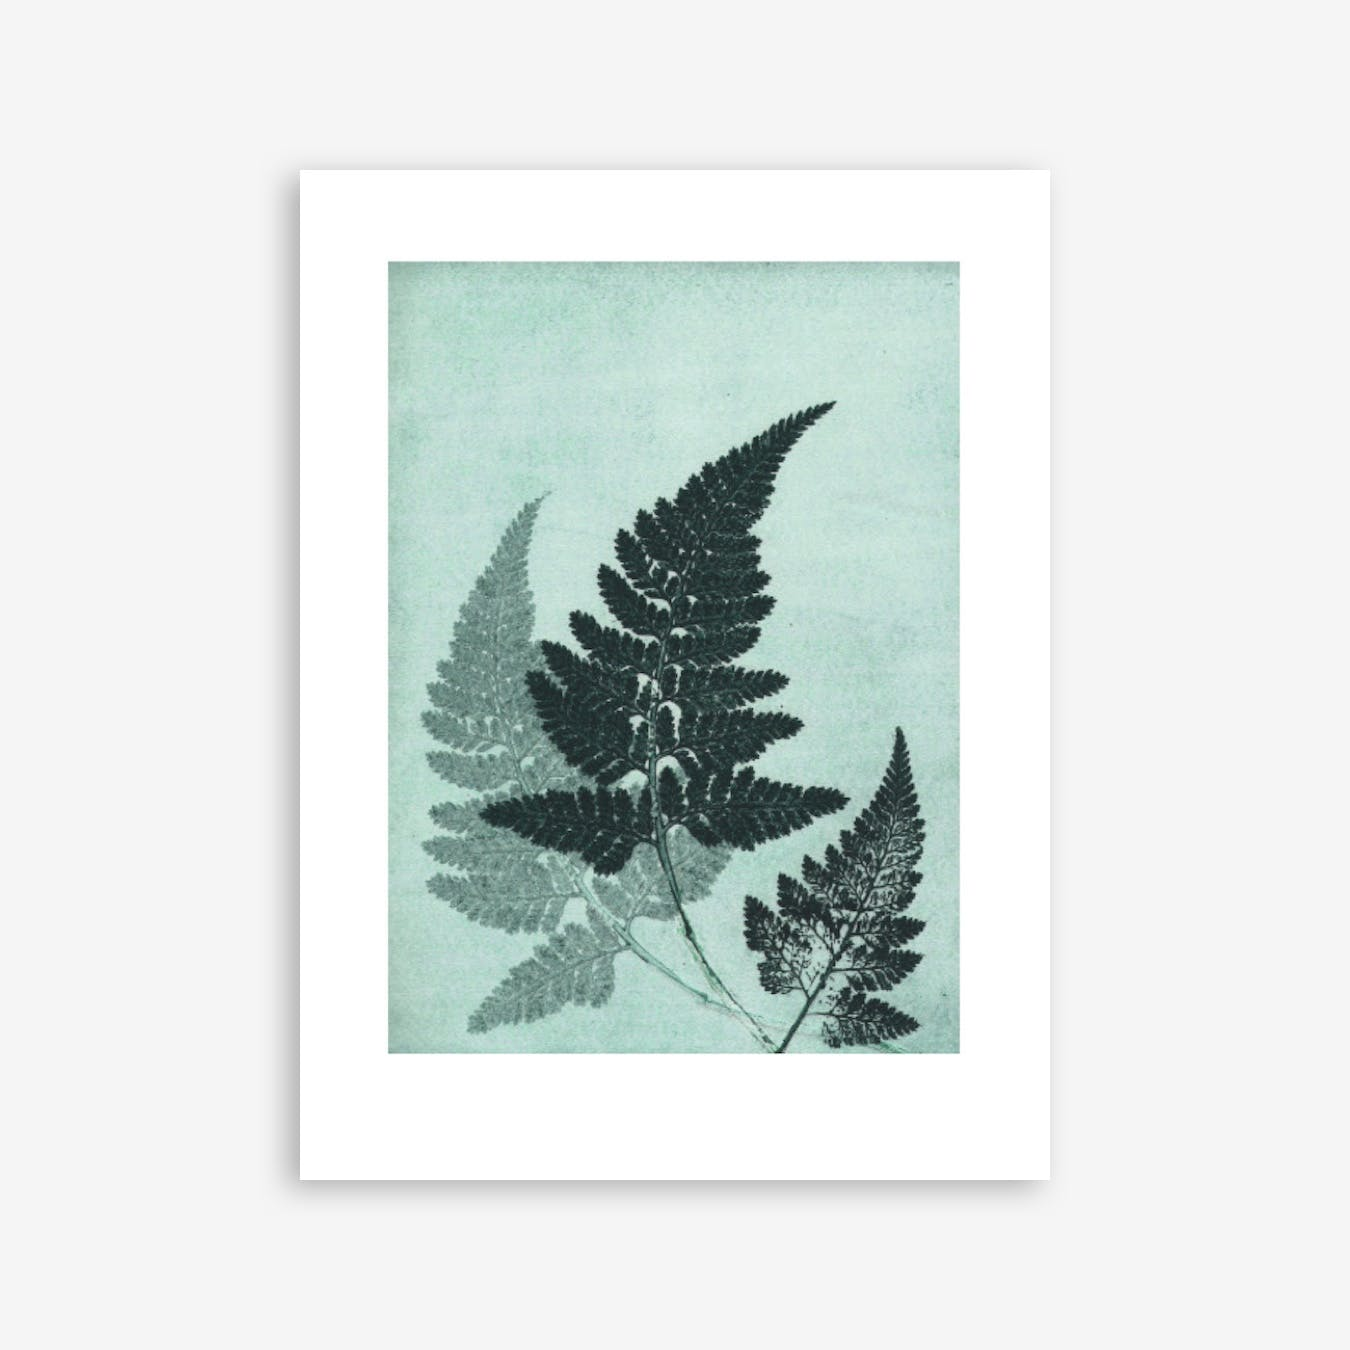 Fern River Green Print In 30cm x 40cm